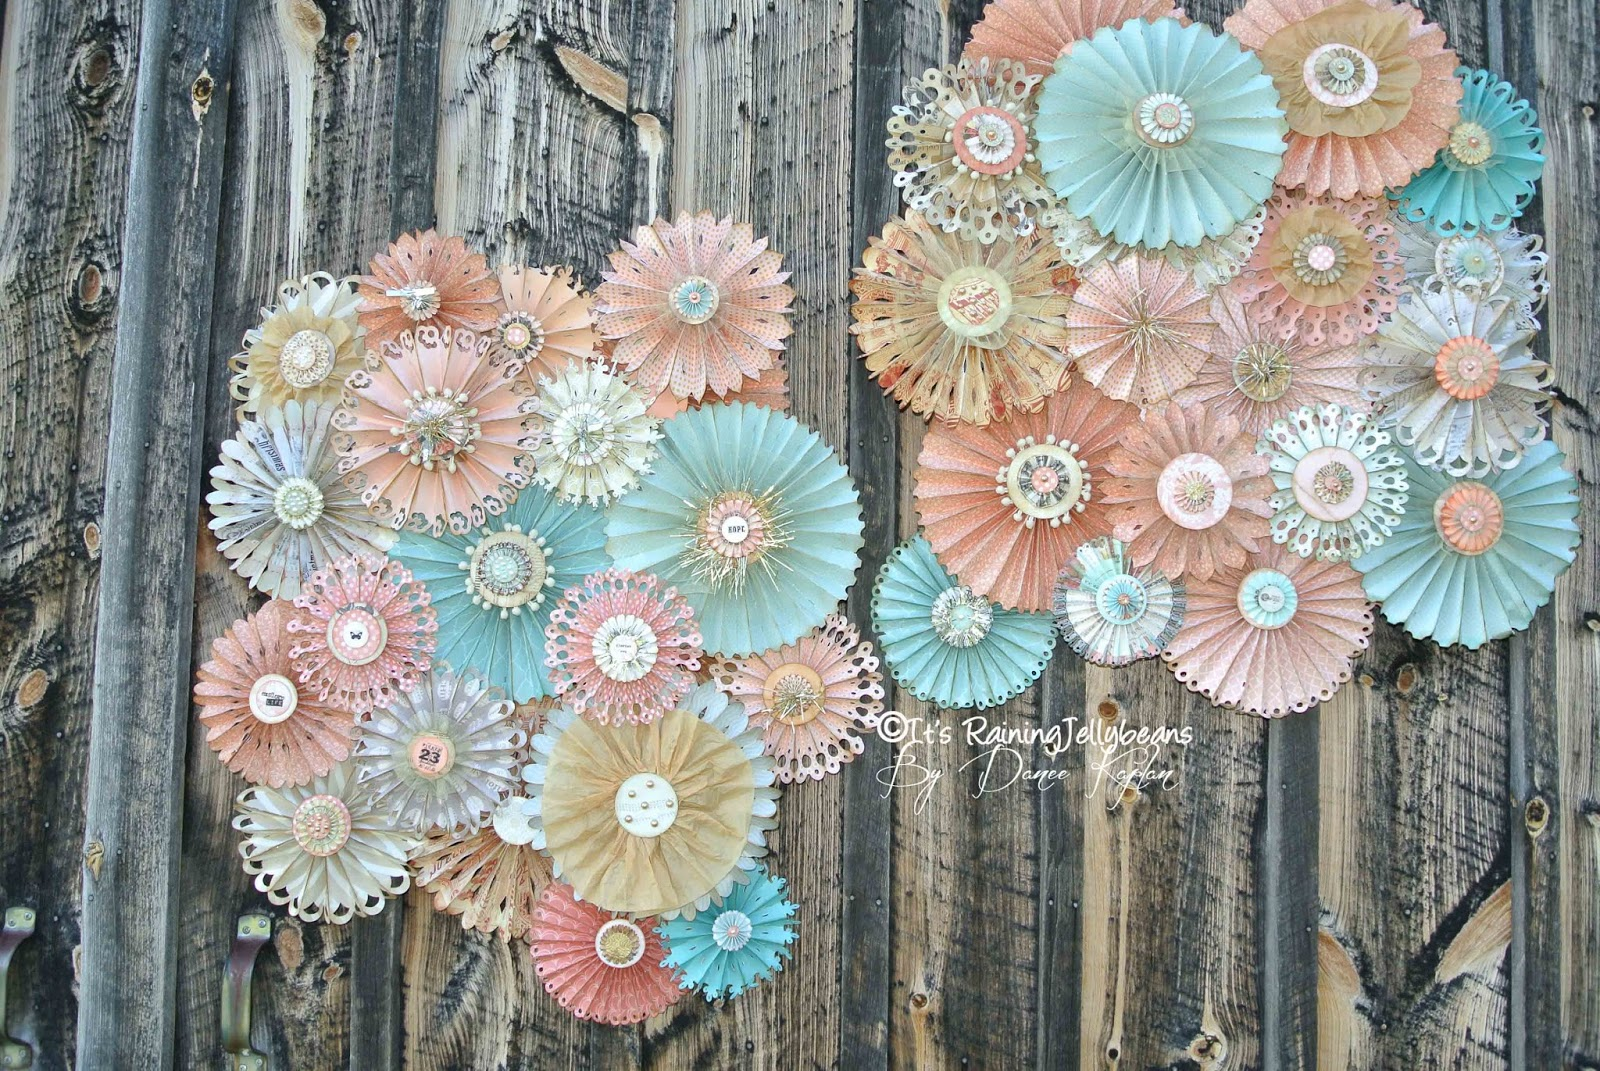 Its Raining Jelly Beans: Wedding: Rosette Wall Decor